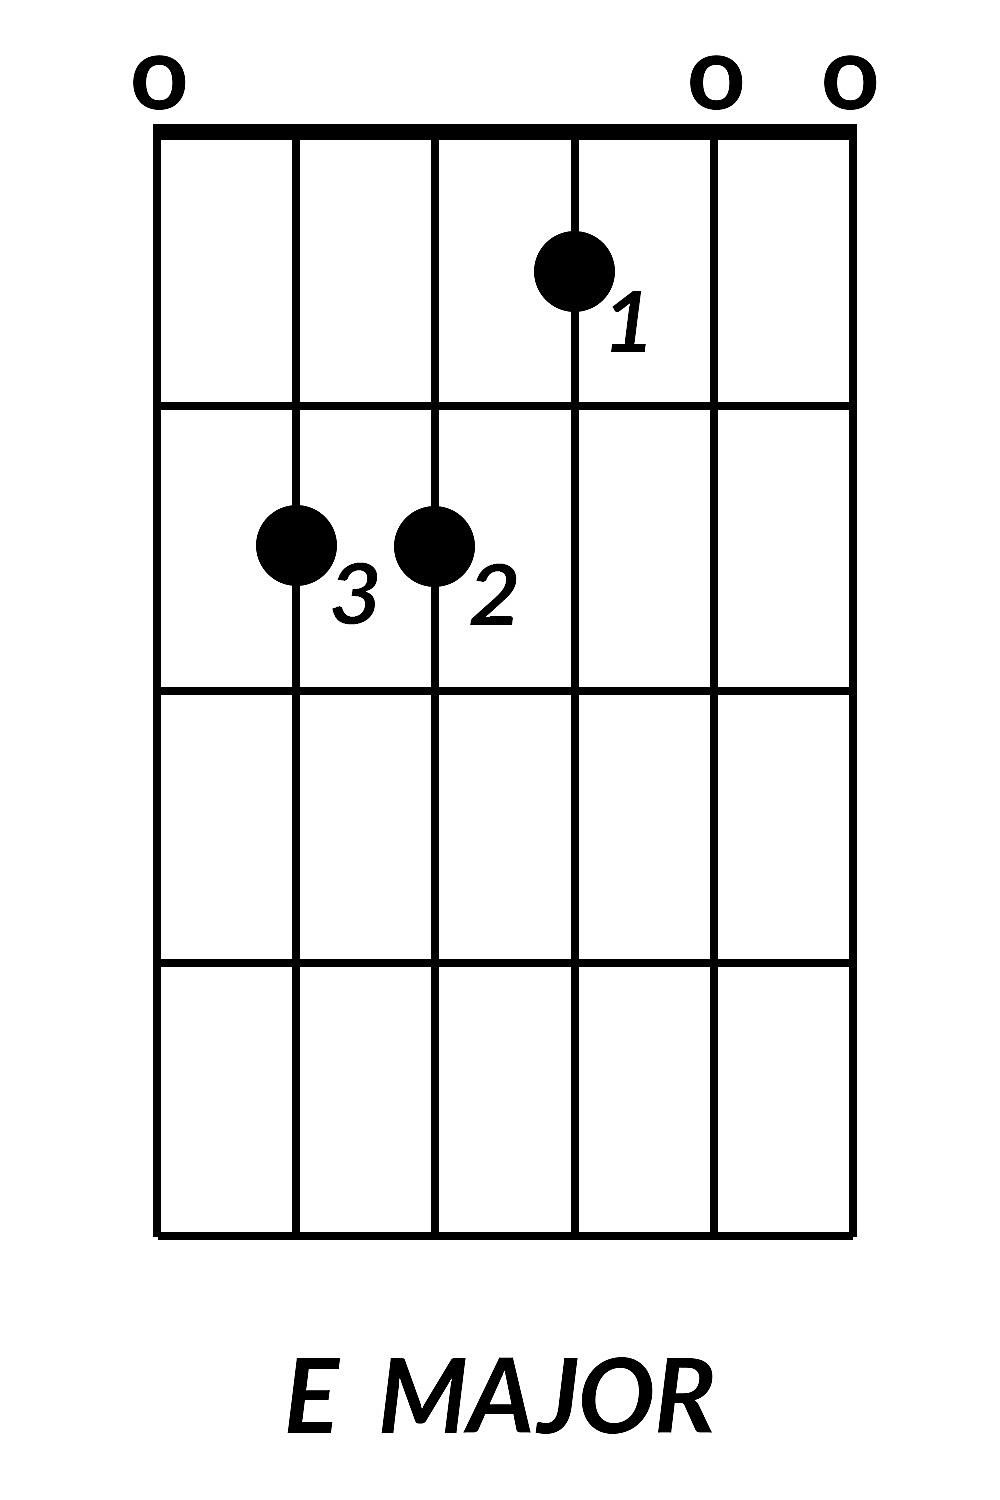 How To Play Guitar Chords How To Play Basic Guitar Chords For Beginners Yederberglauf